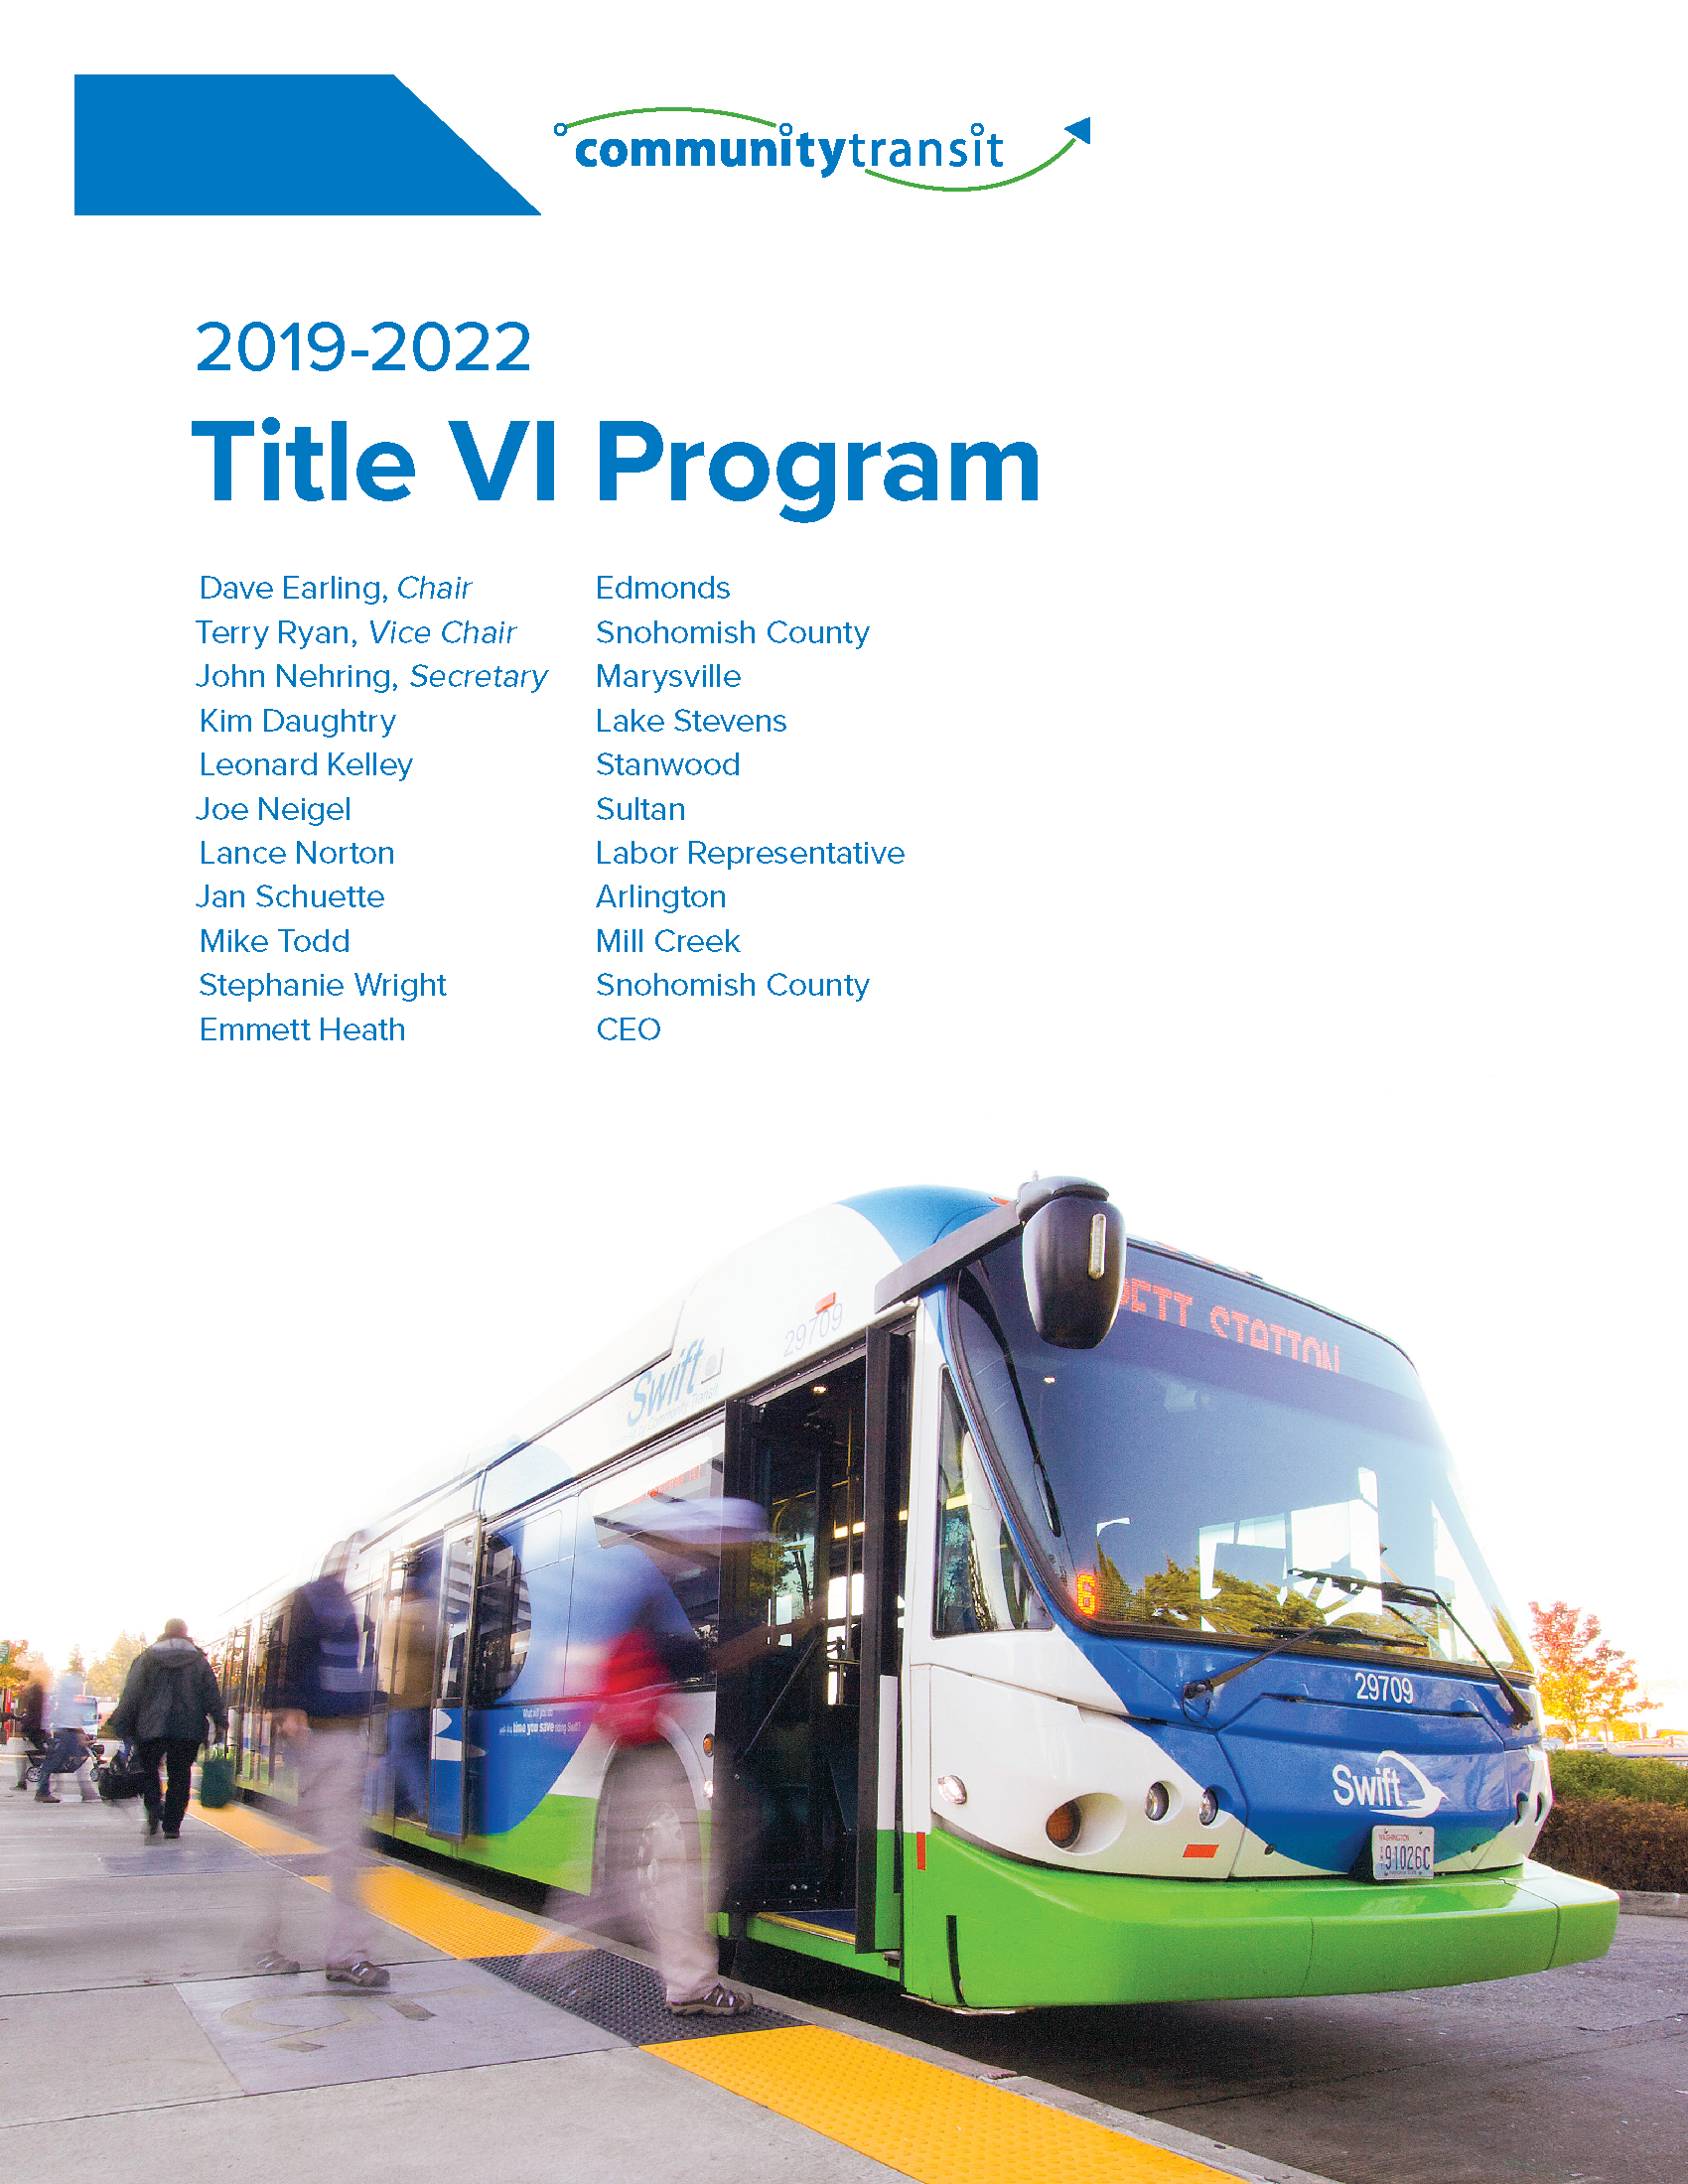 Click image to download PDF of 2019-2022 Title VI Program Draft